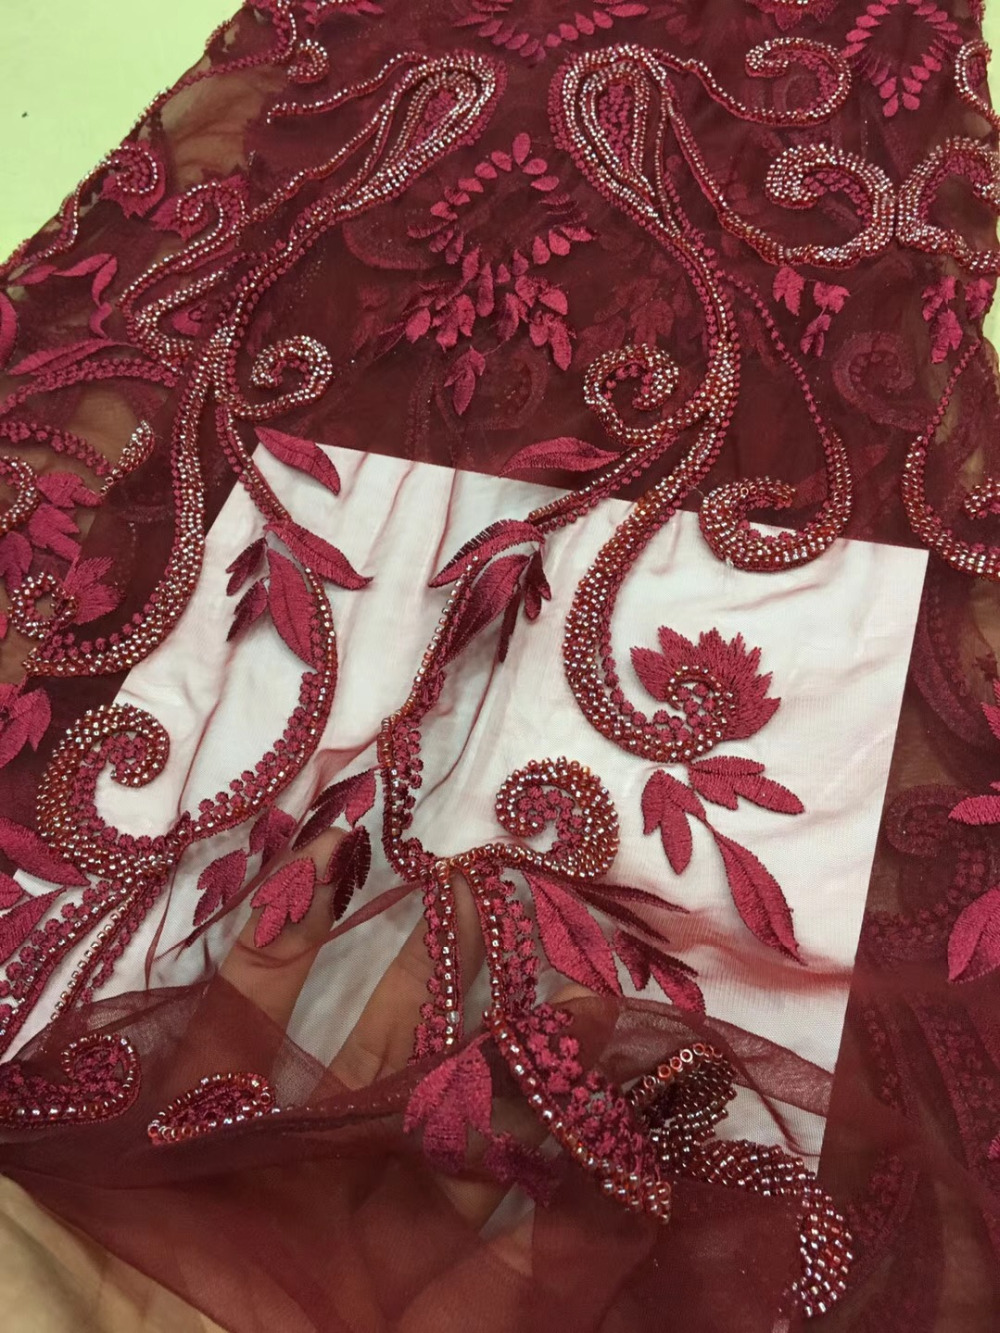 New arrivals off white/wine beads on tulle mesh embroidery lace fabric wedding/party/evening dress lace fabric 1yardsNew arrivals off white/wine beads on tulle mesh embroidery lace fabric wedding/party/evening dress lace fabric 1yards